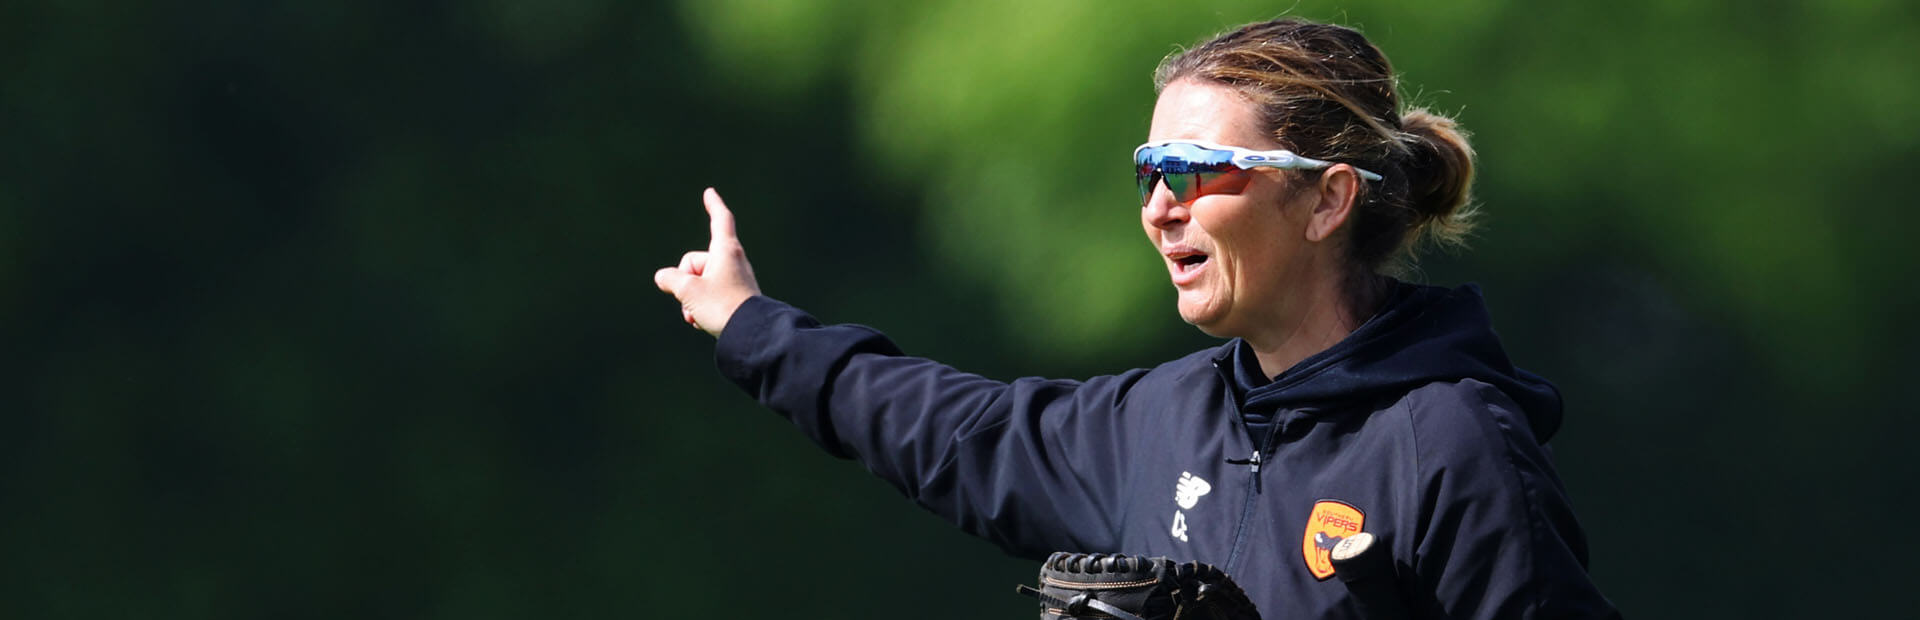 Women's Regional T20 Competition named Charlotte Edwards Cup